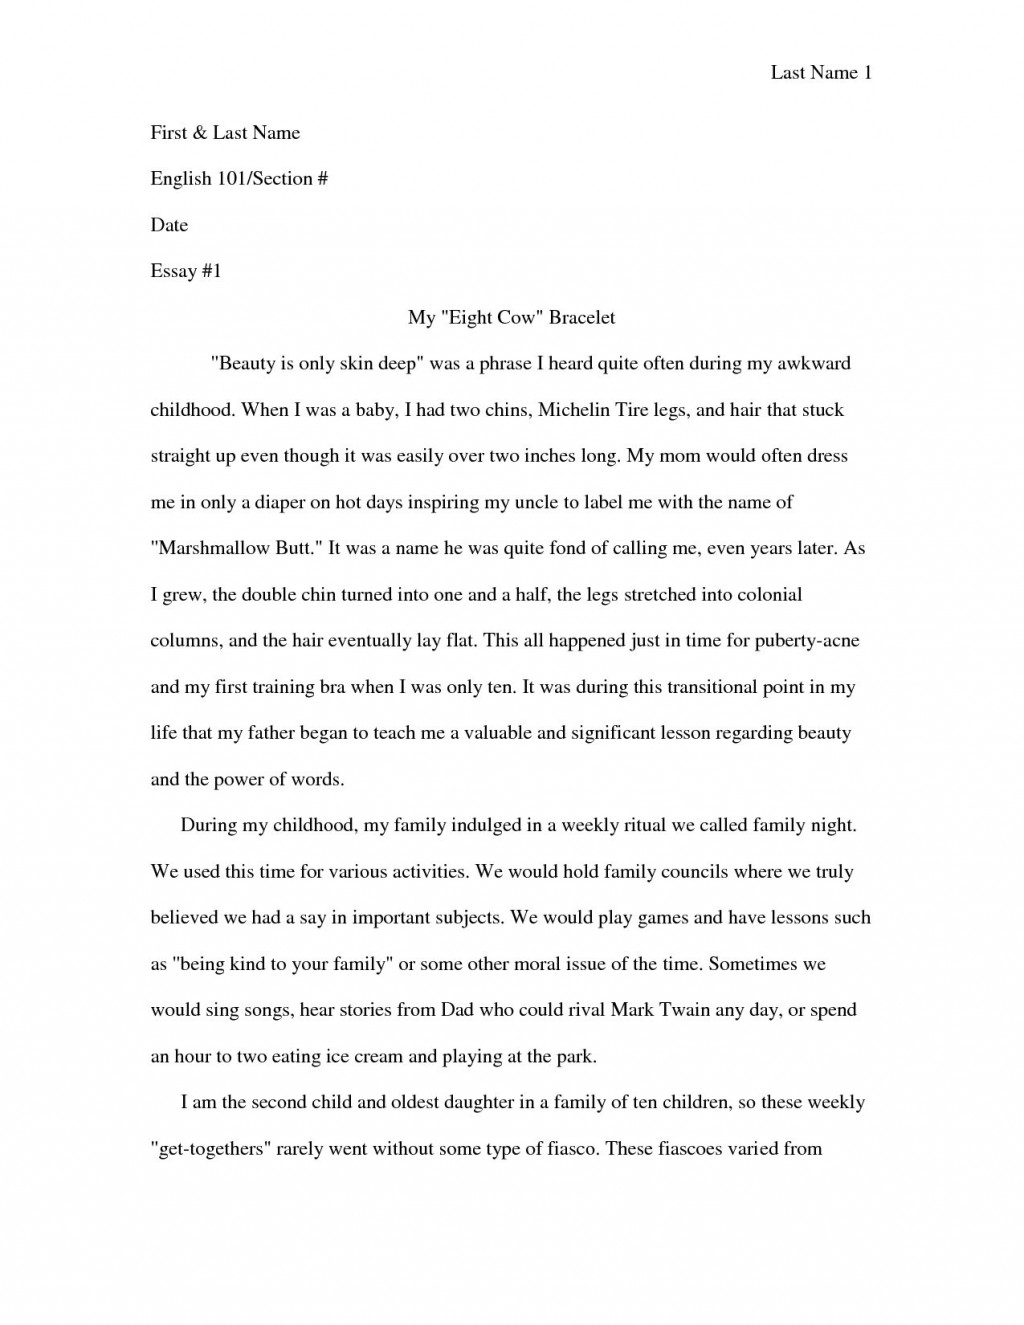 006 Essayample Writing Narrativeamples Personal An For College Application Resume Write Sch Academia Research Center Ge Powerpoint 4th Grade Ppt Outline Step By Mrsniradale Archaicawful Example Narrative Essay Childhood Memory Losing Loved One Excellent Spm Large